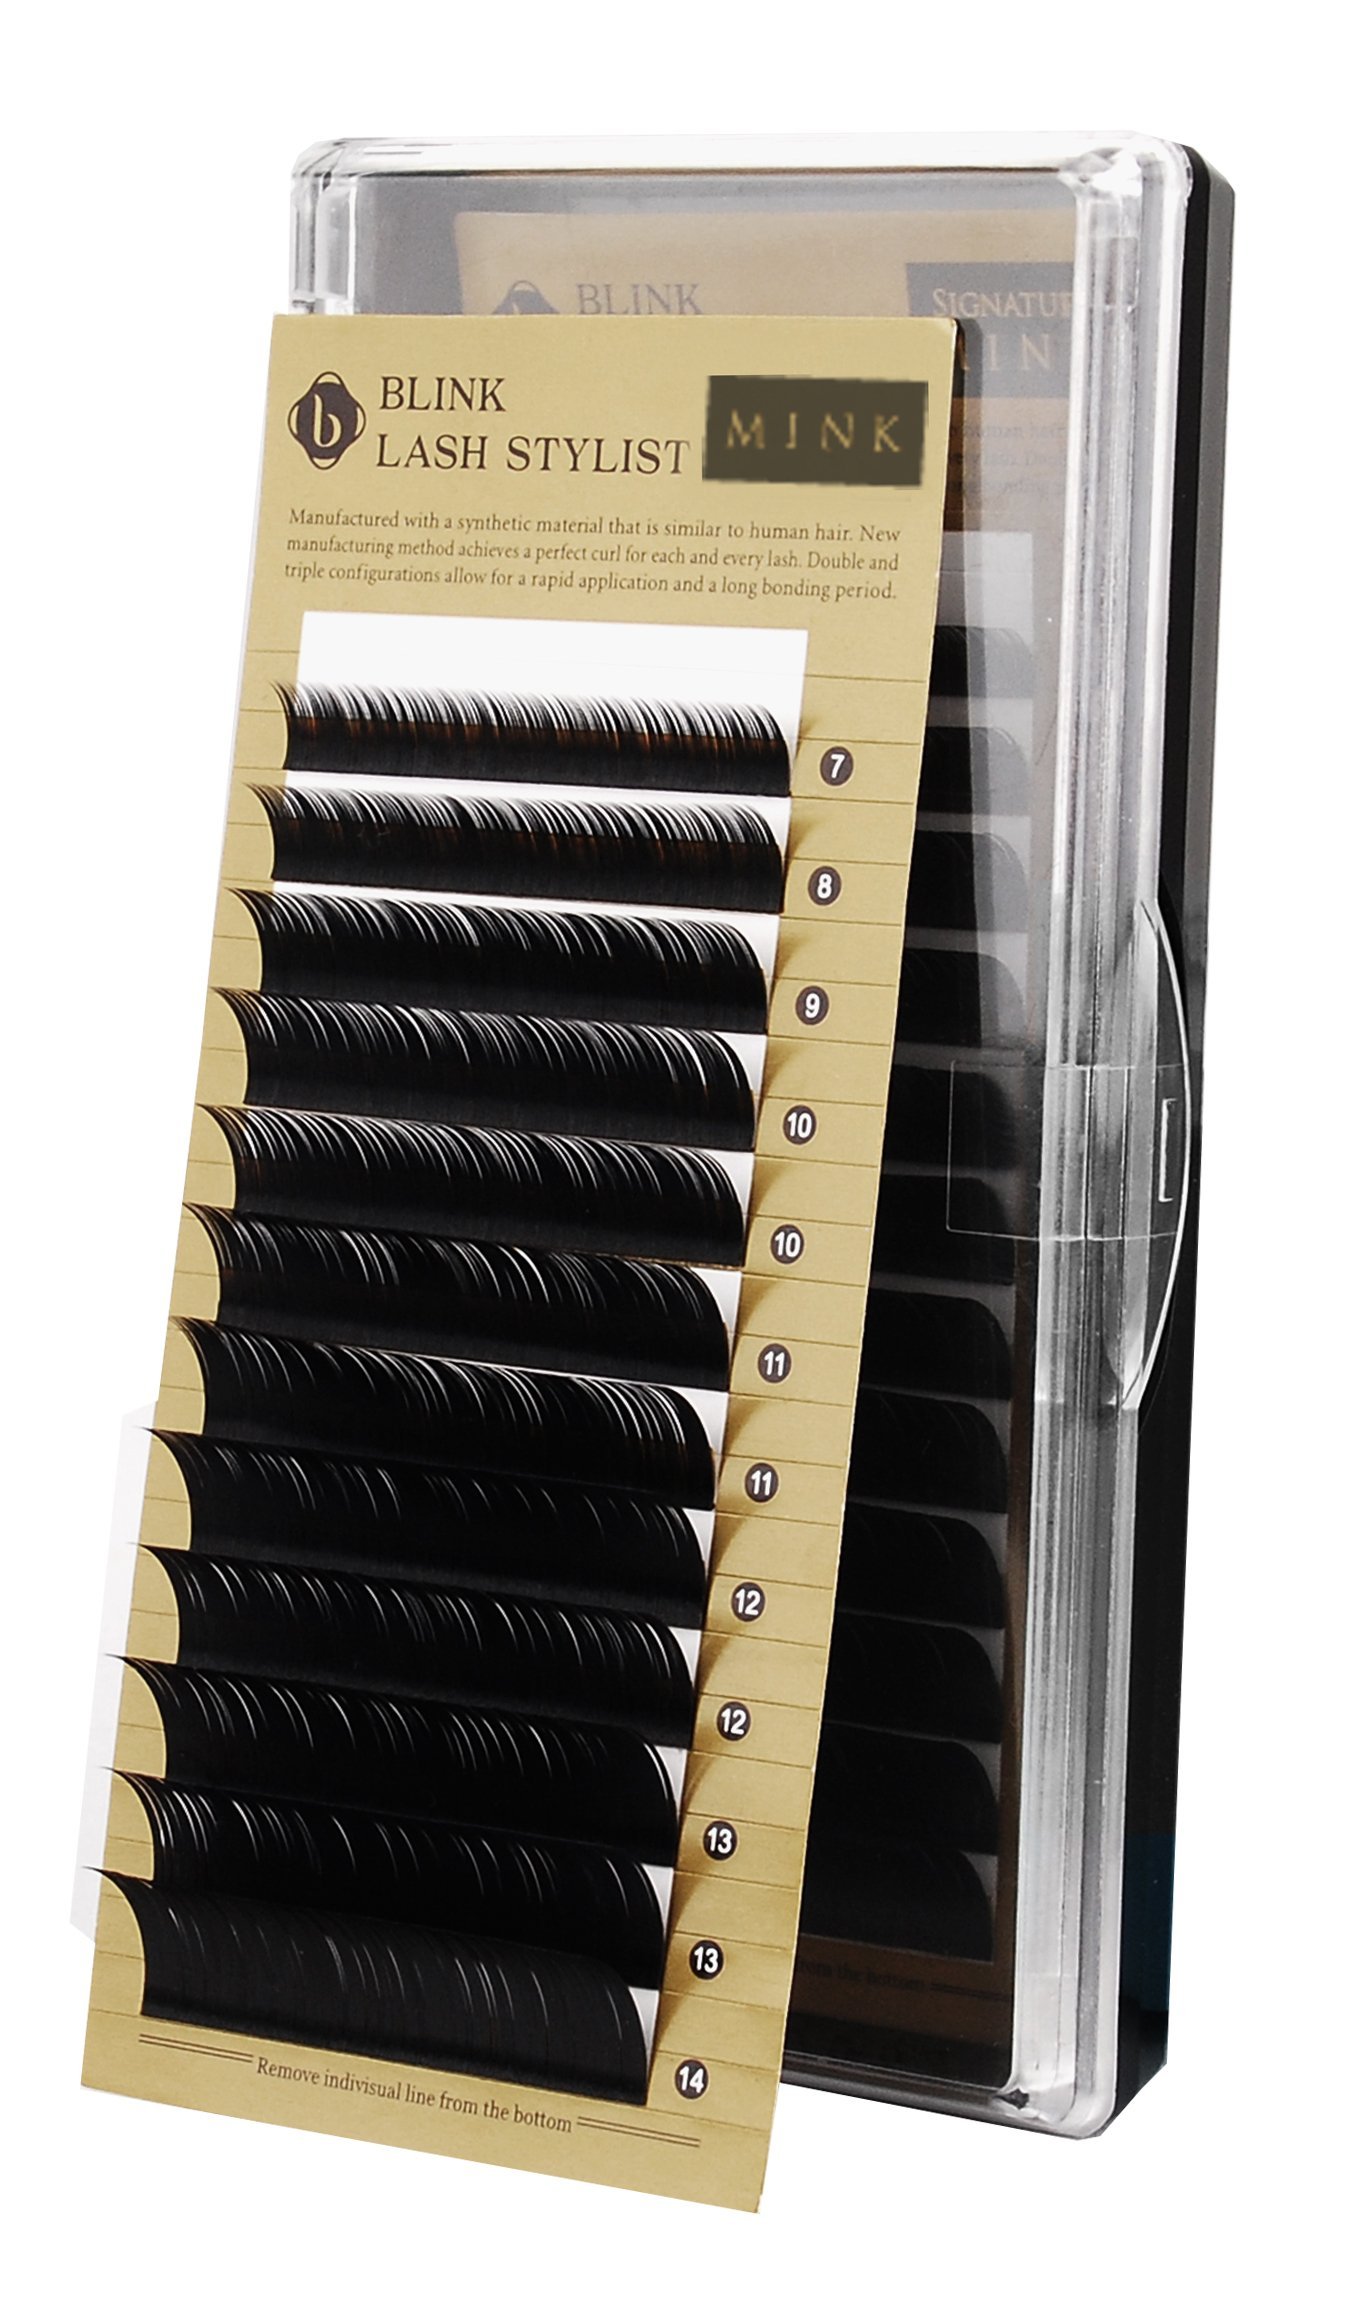 478ff51981c Amazon.com : Eyelash Extension Blink Signature Mink Lash D Curl 0.15 x  (7~14mm), 8 Sizes in 1 Mixed Tray (DX0.15) : Beauty